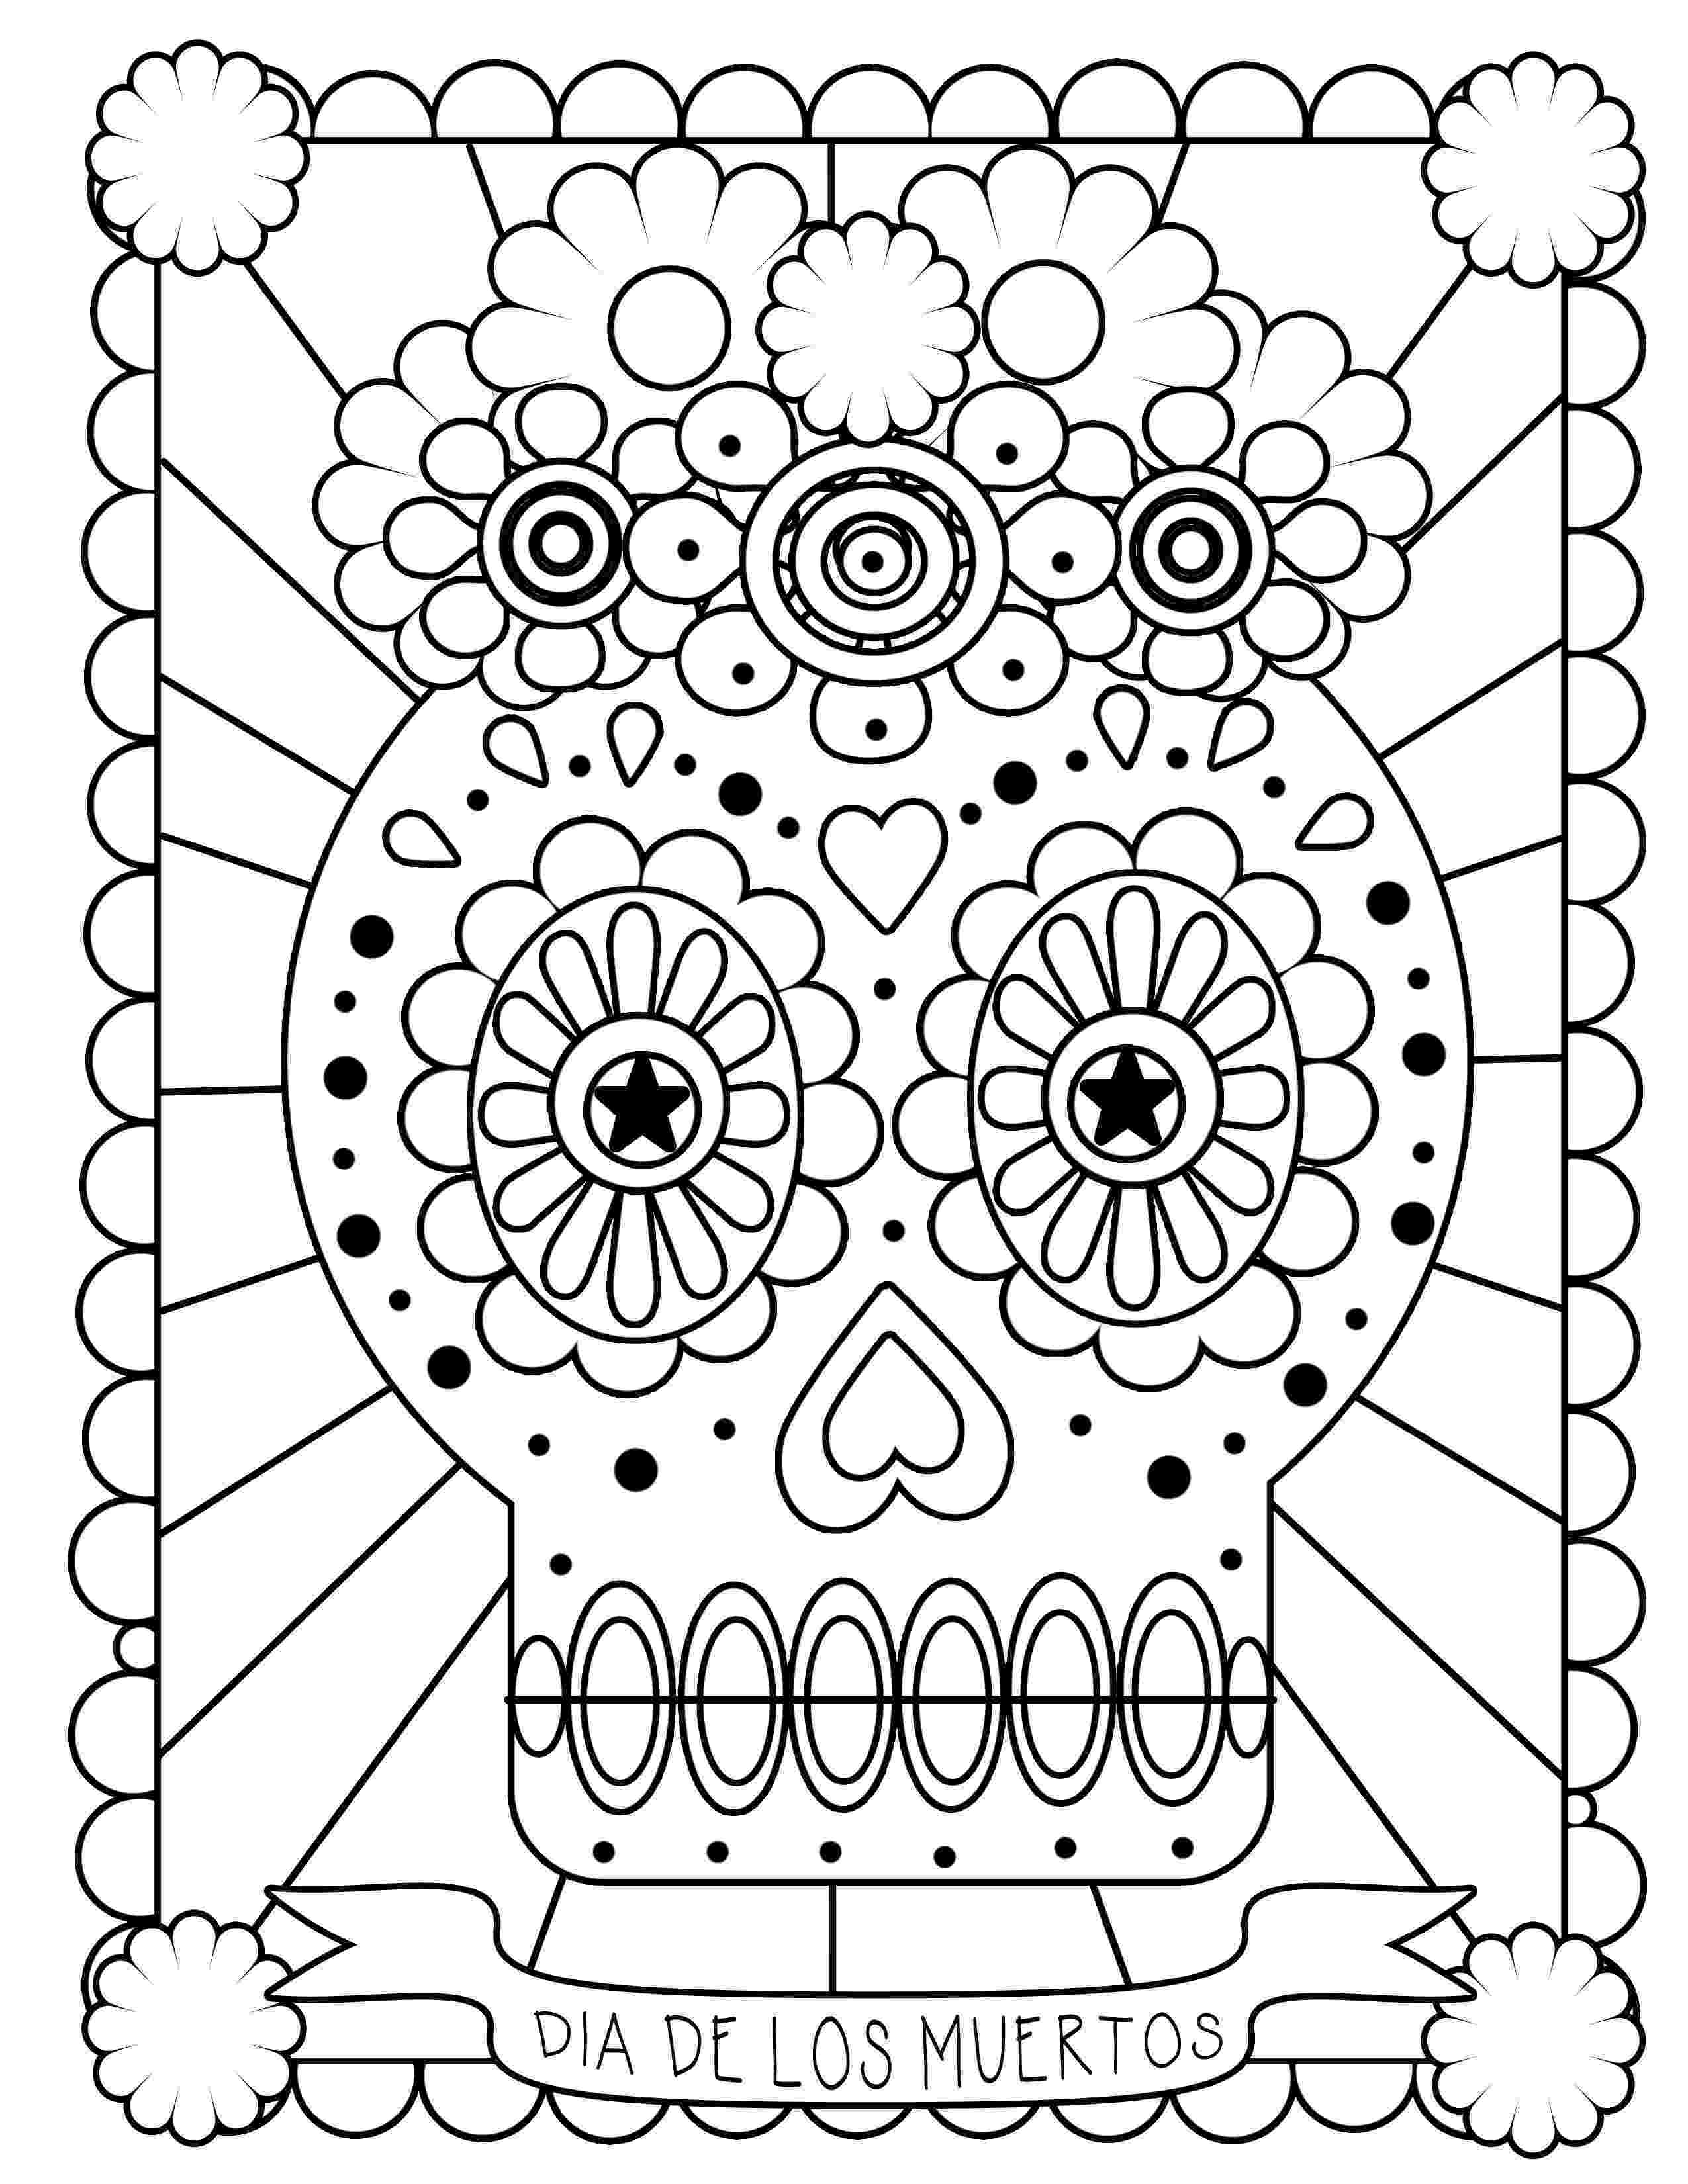 day of the dead printable pictures free printable day of the dead coloring pages best day of the printable dead pictures